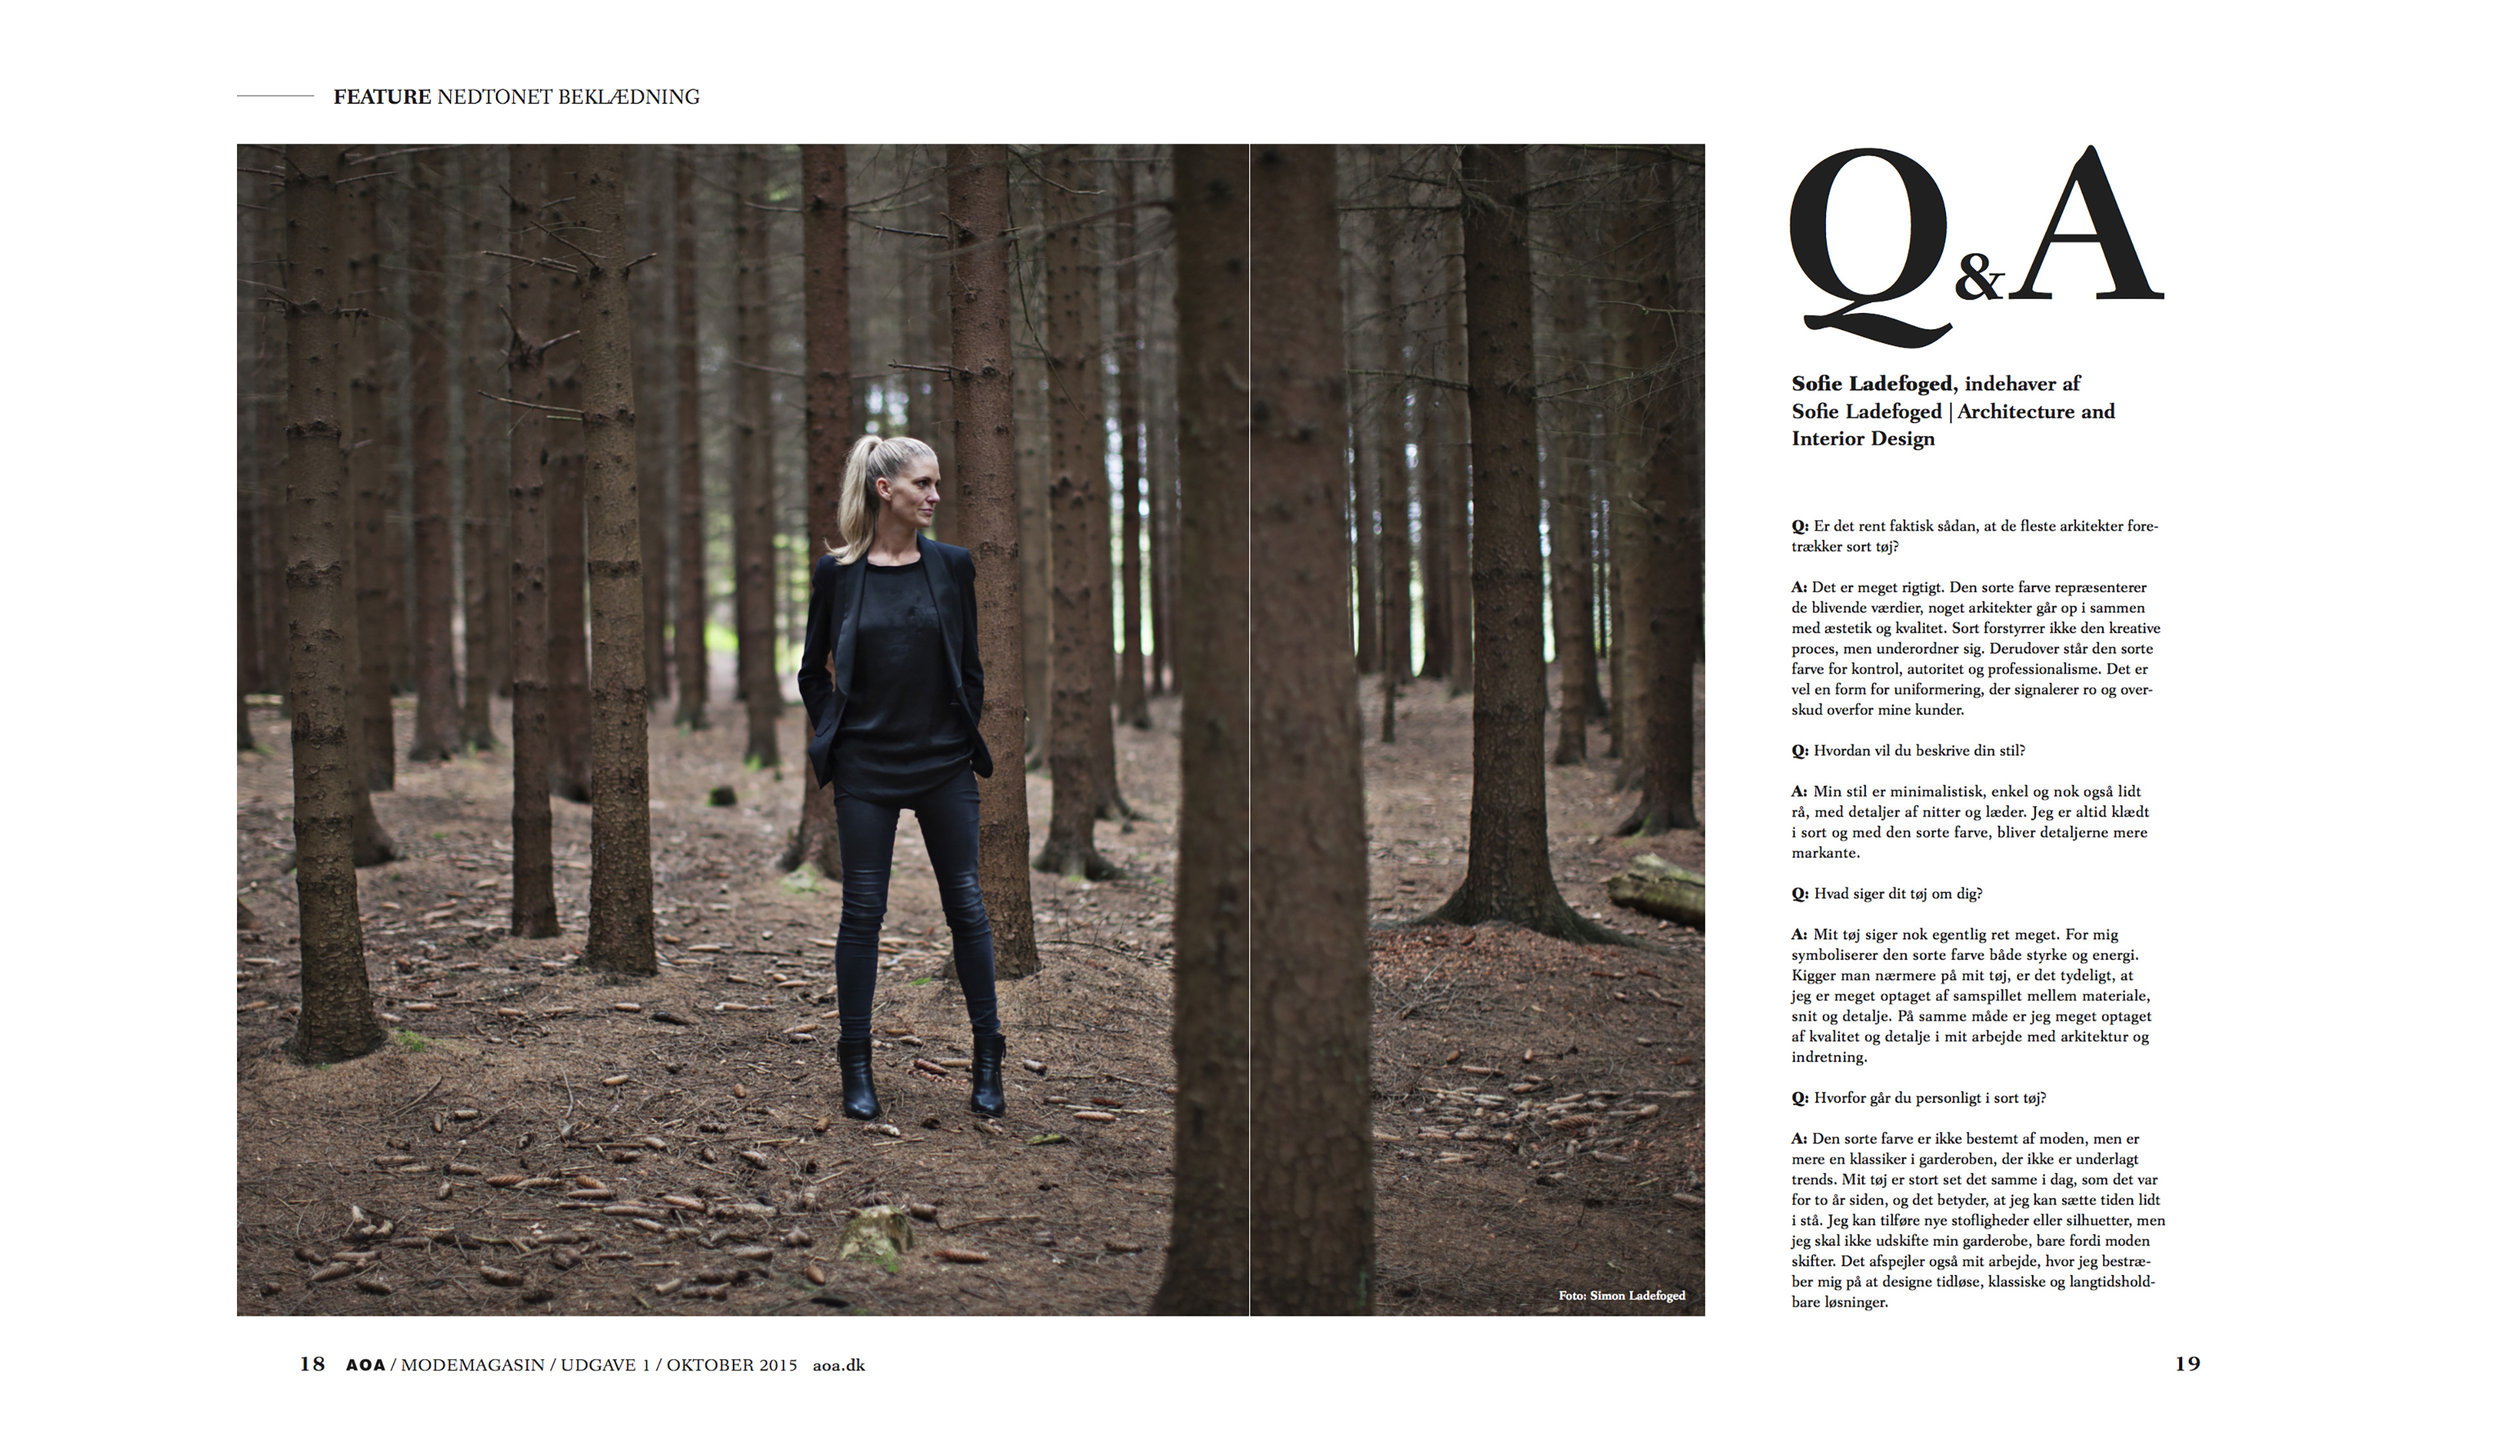 sofie-ladefoged-press-aoa-modemagasin-2015-page-03.jpg